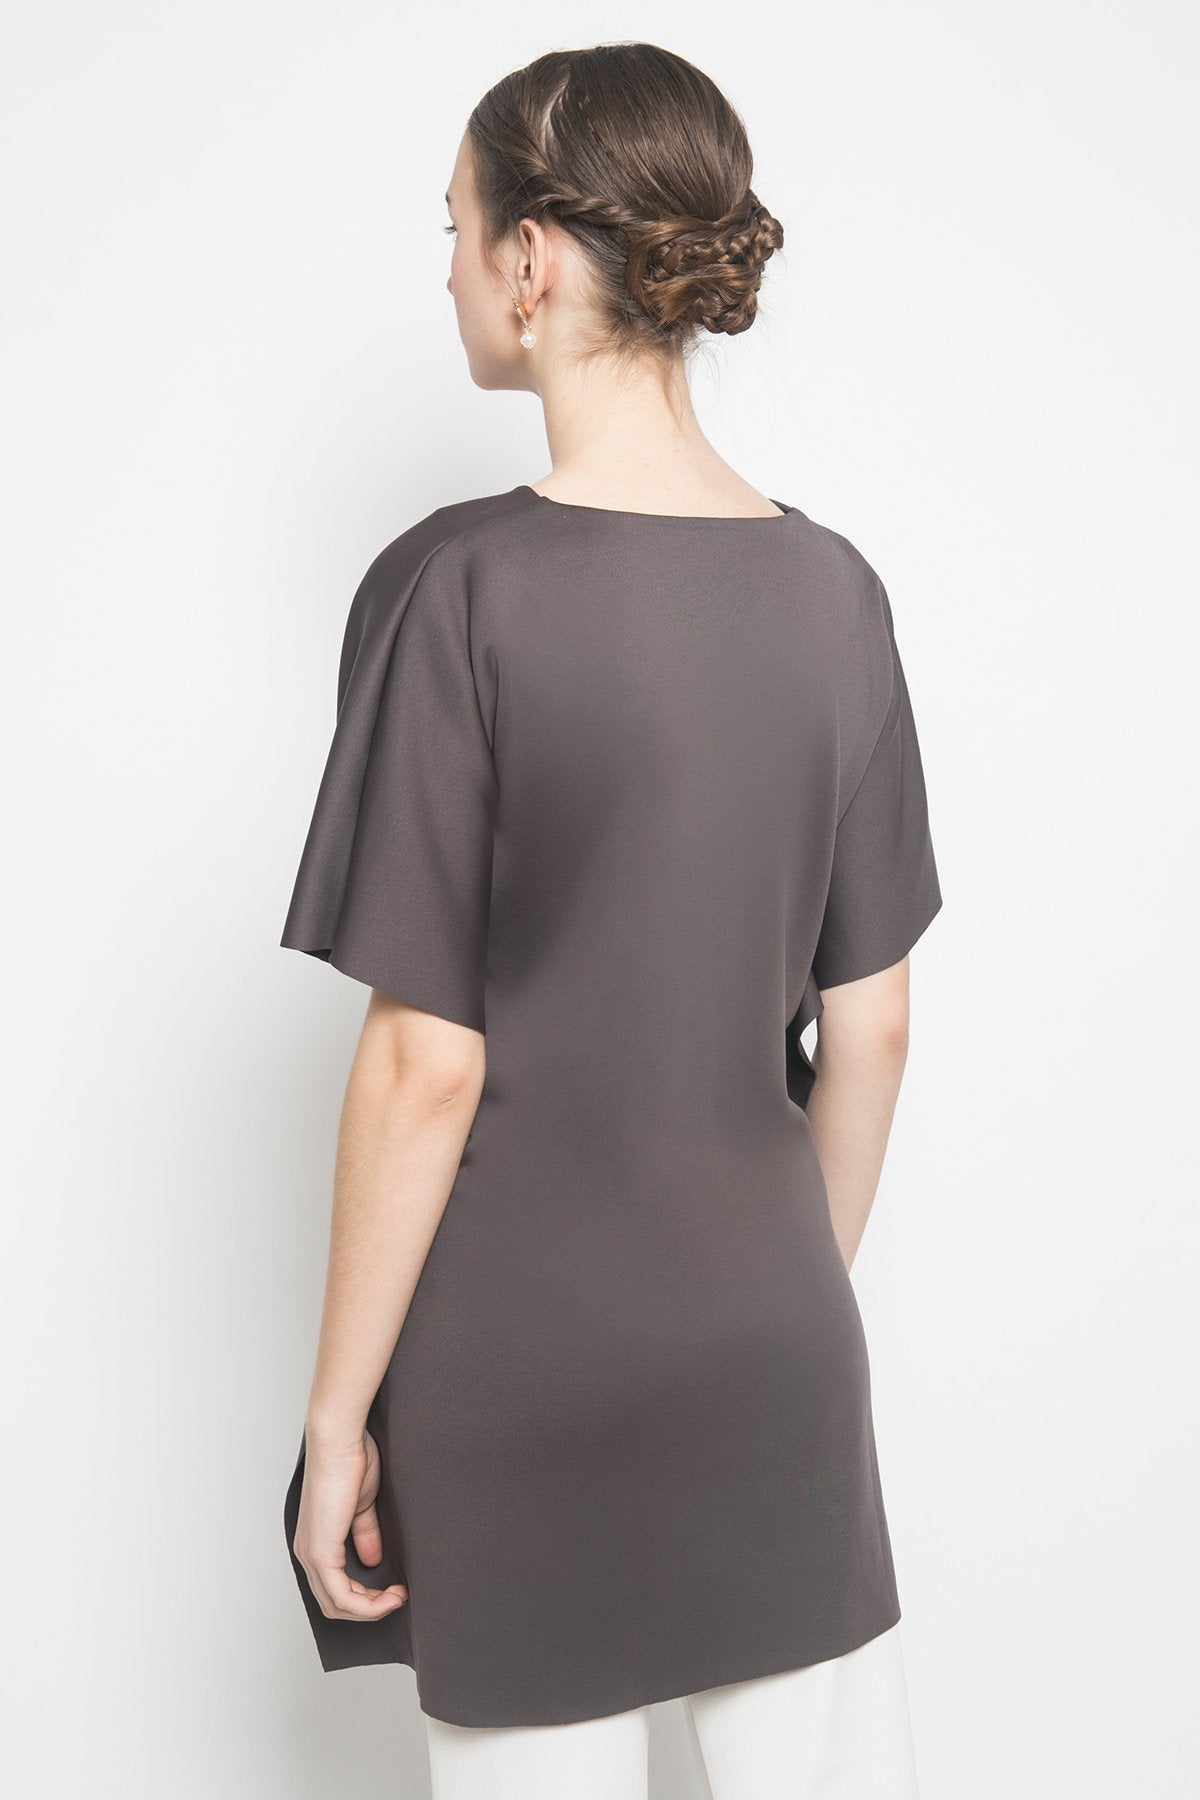 Kyna Top in Grey